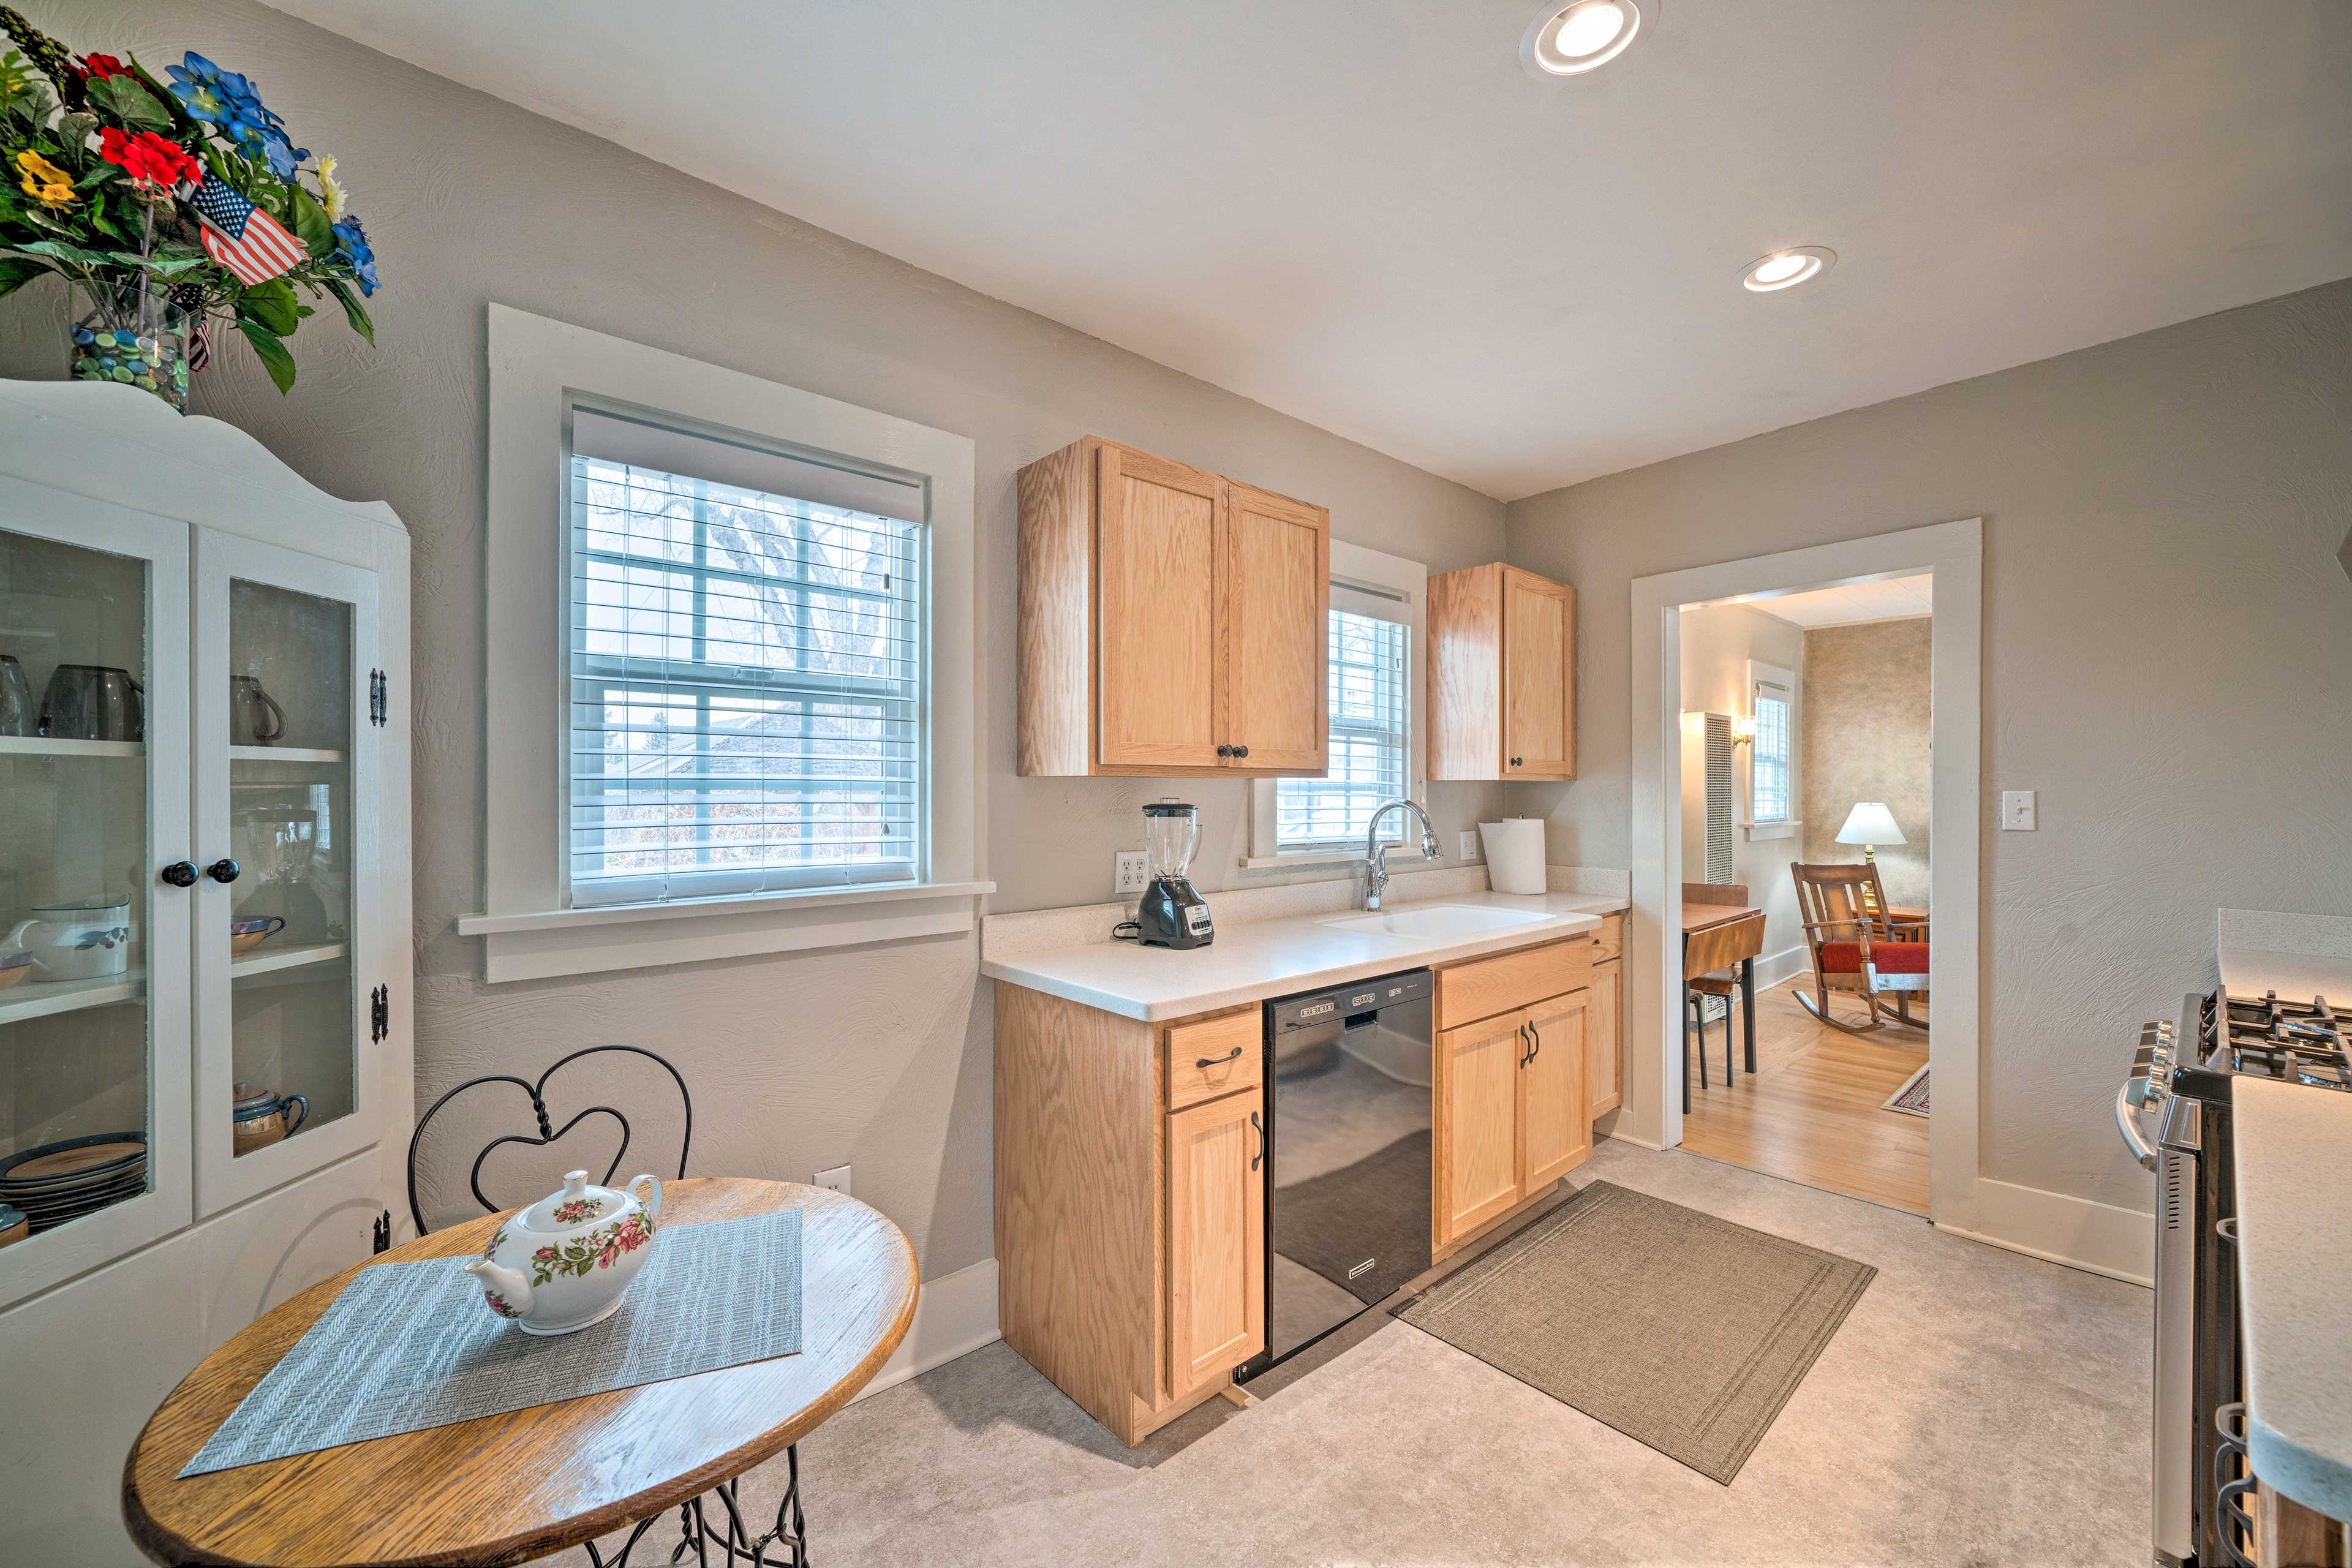 Enjoy a quiet breakfast in the light and airy kitchen.